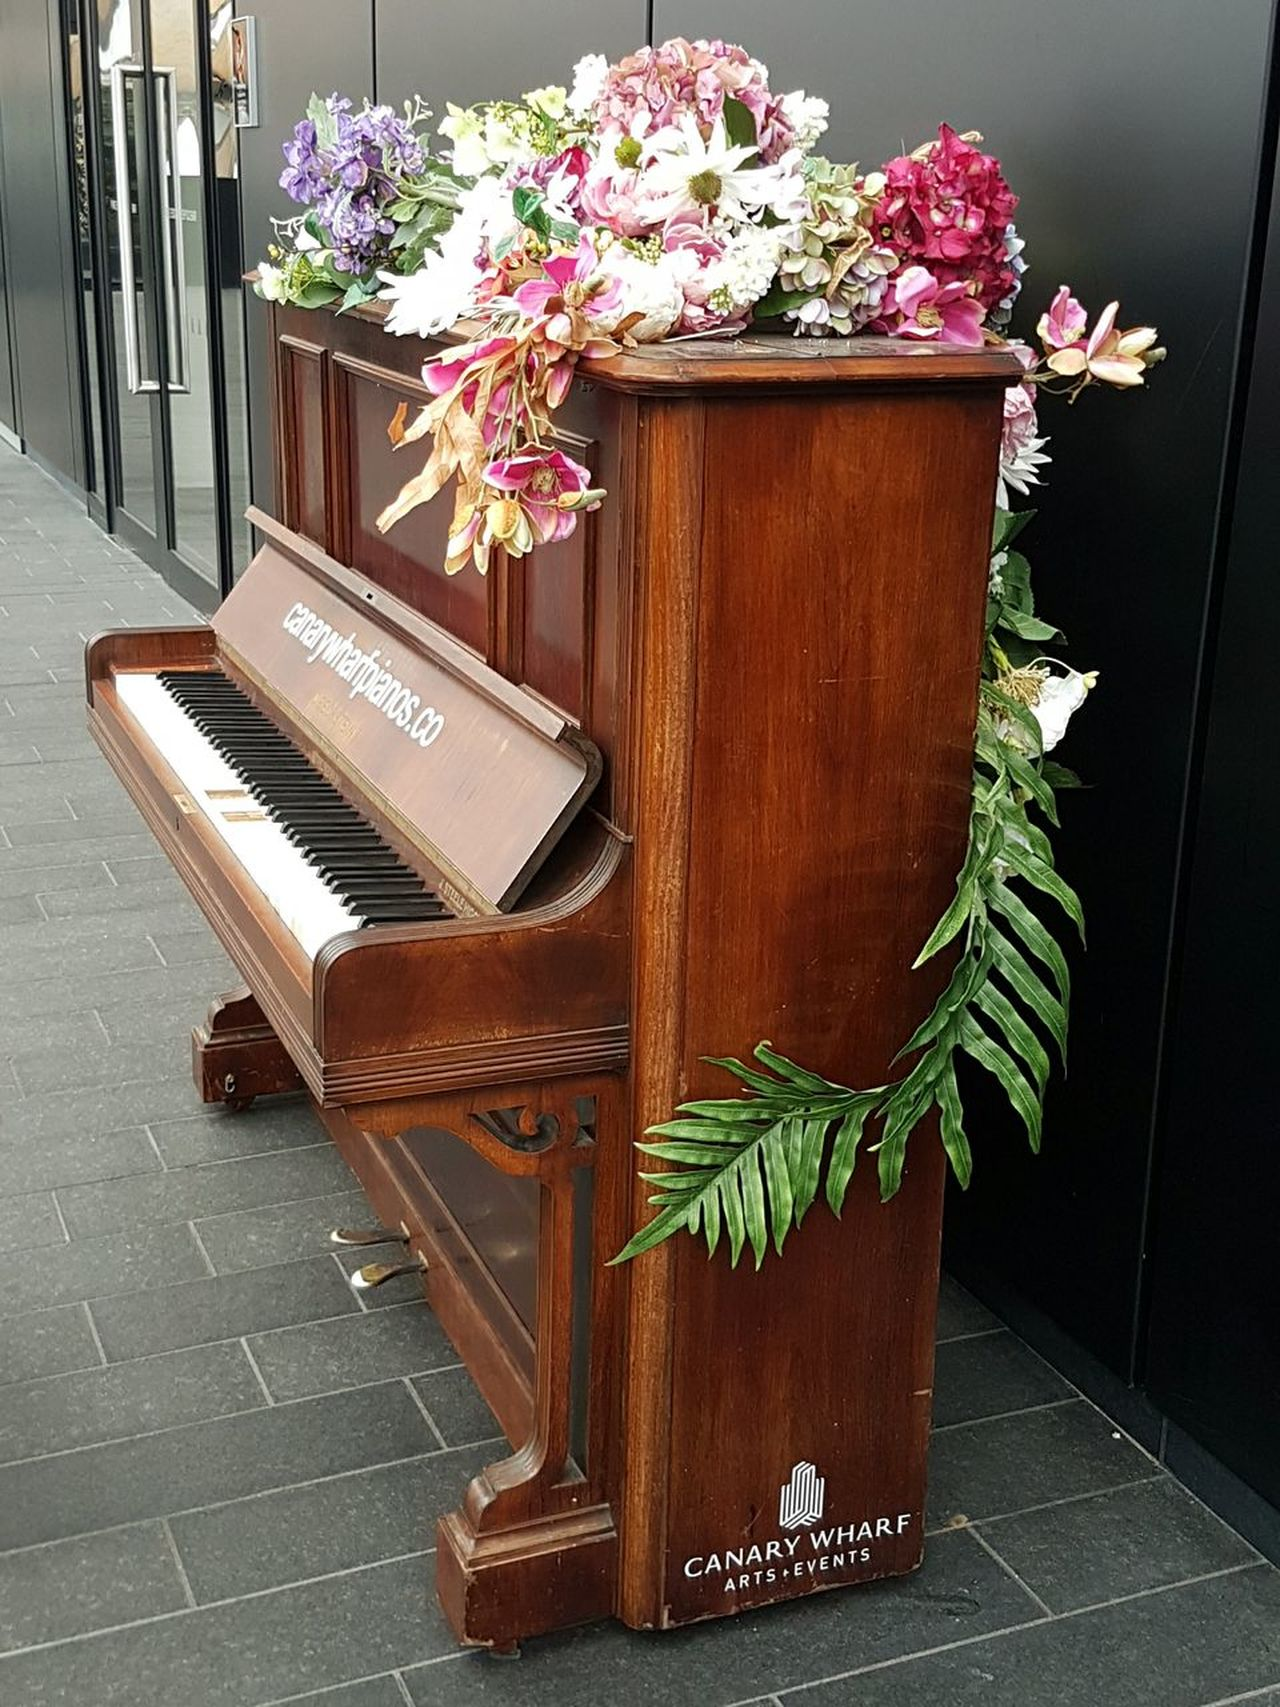 Piano Moments Piano Public Piano Canary Wharf In London Flower